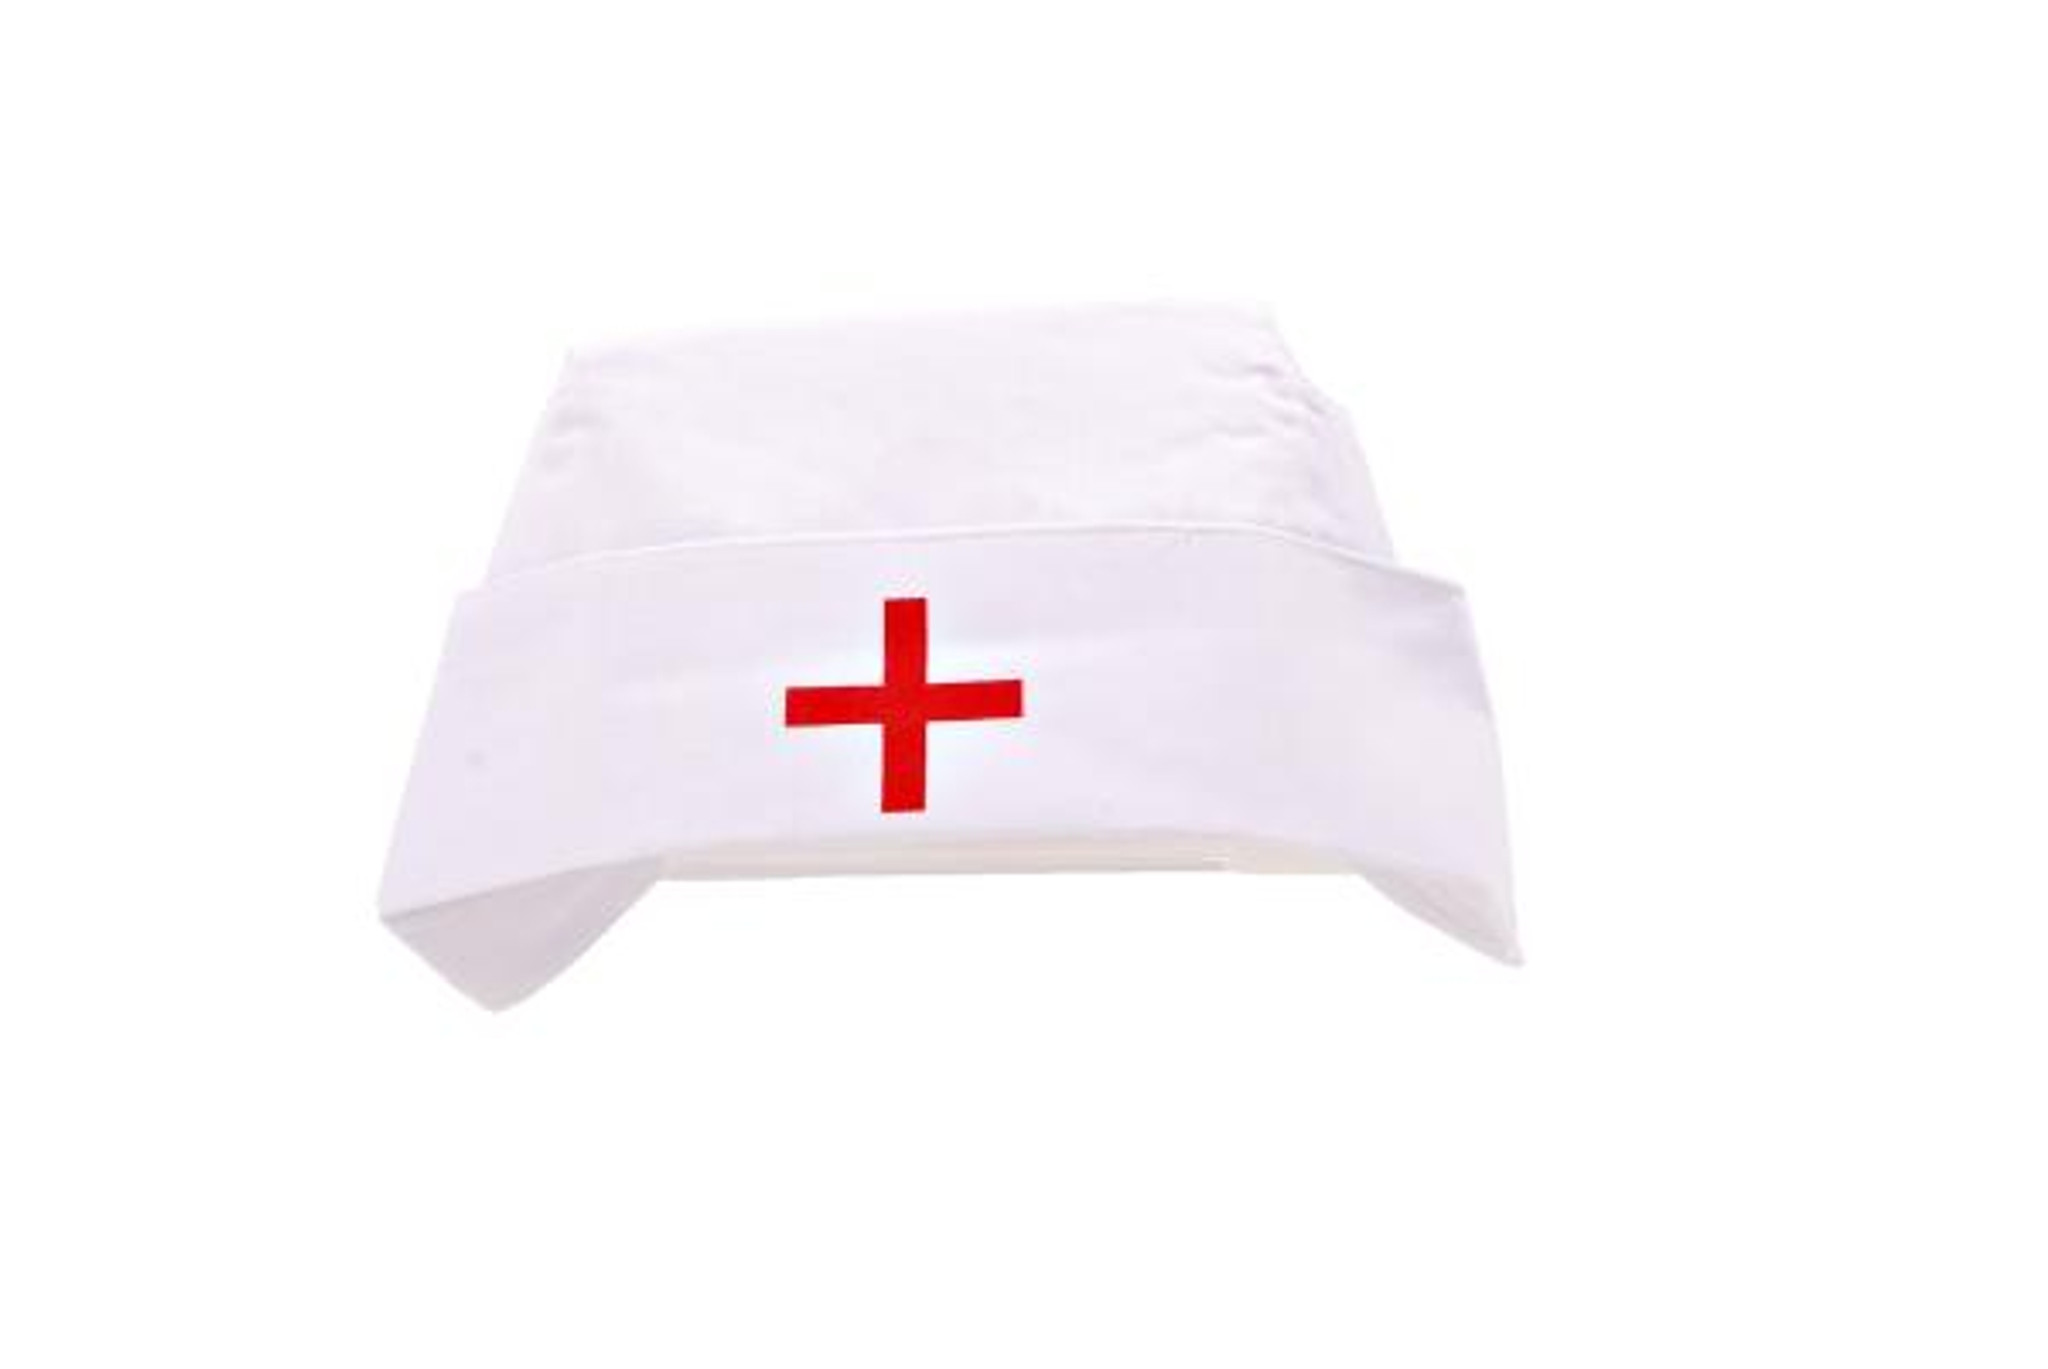 Nurse Hat White Cap With Red Plus Symbol For First Aid